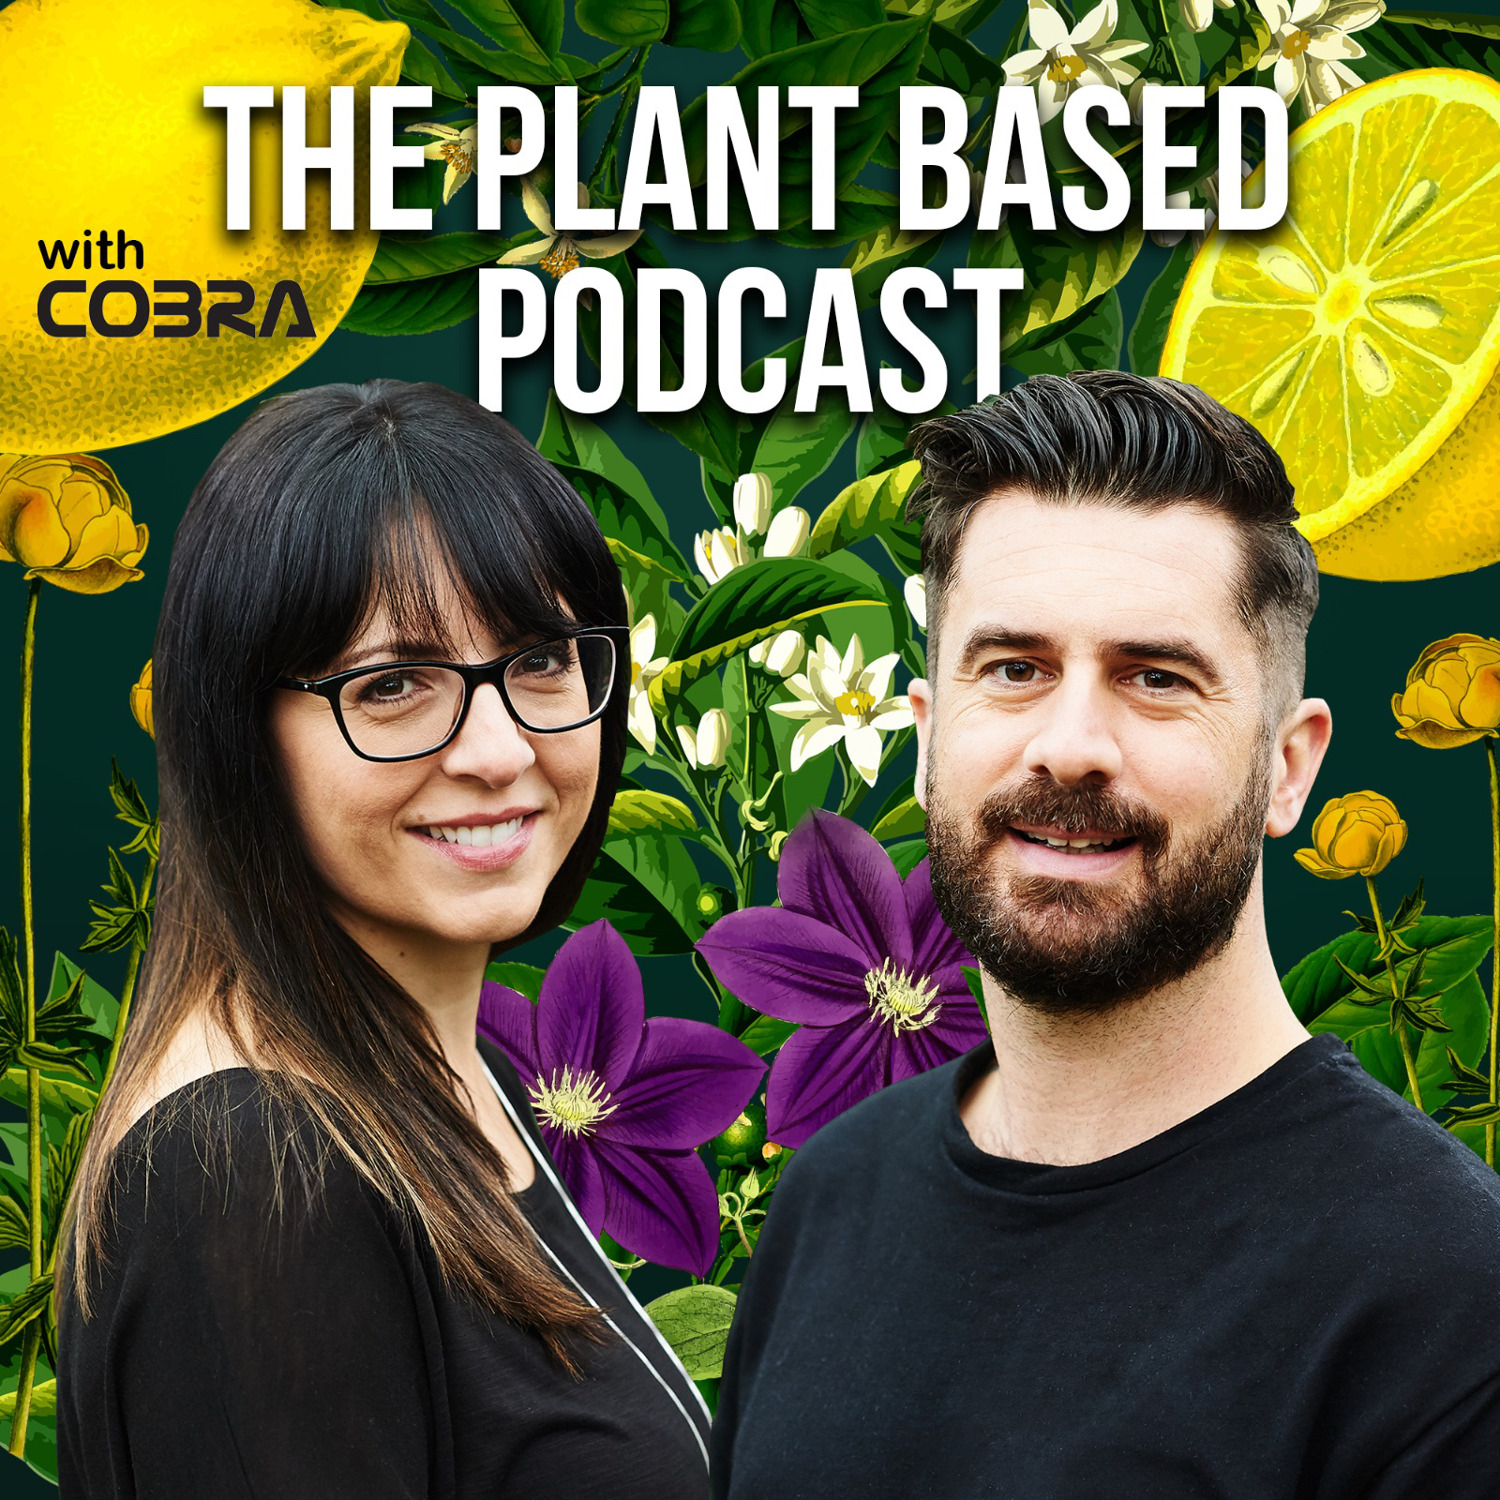 The Plant Based Podcast S4 Episode Seven - Plant trafficking and investigative journalism with Nelufar Hadayat